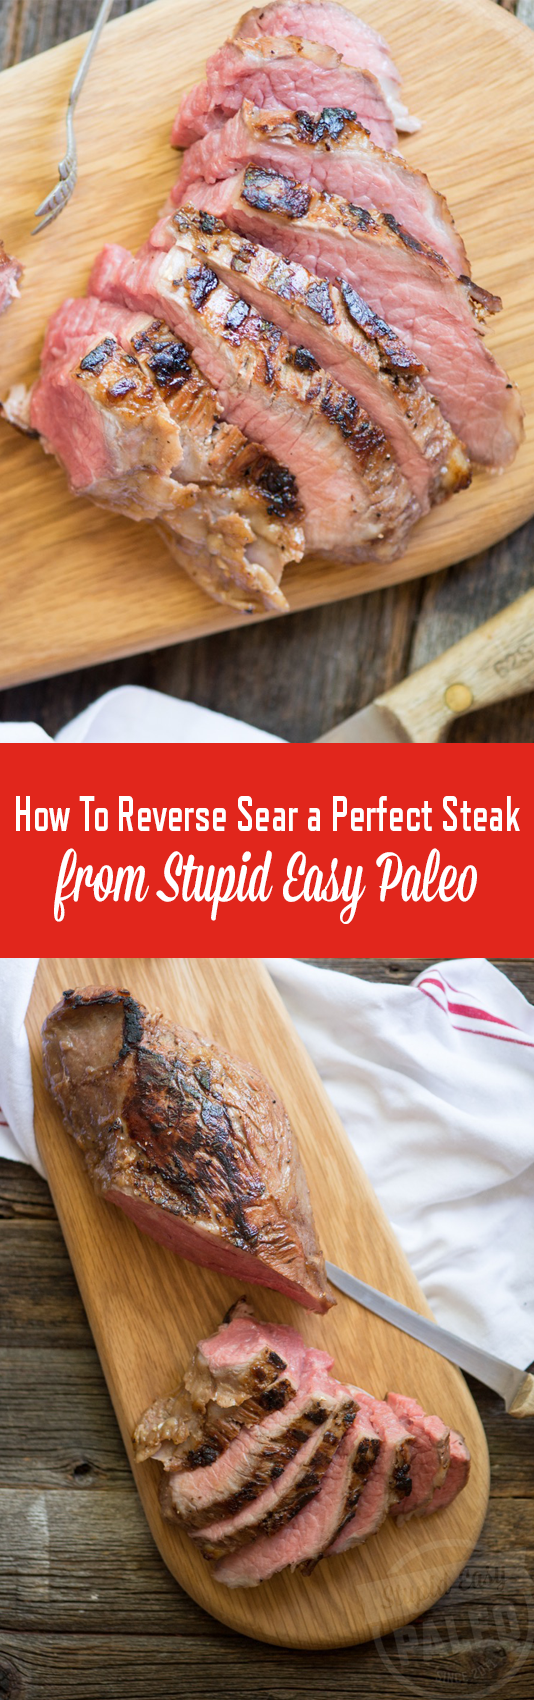 Learn how to reverse sear the perfect steak using this simple technique. You'll end up with evenly-cooked, juicy meat no matter the size! | StupidEasyPaleo.com